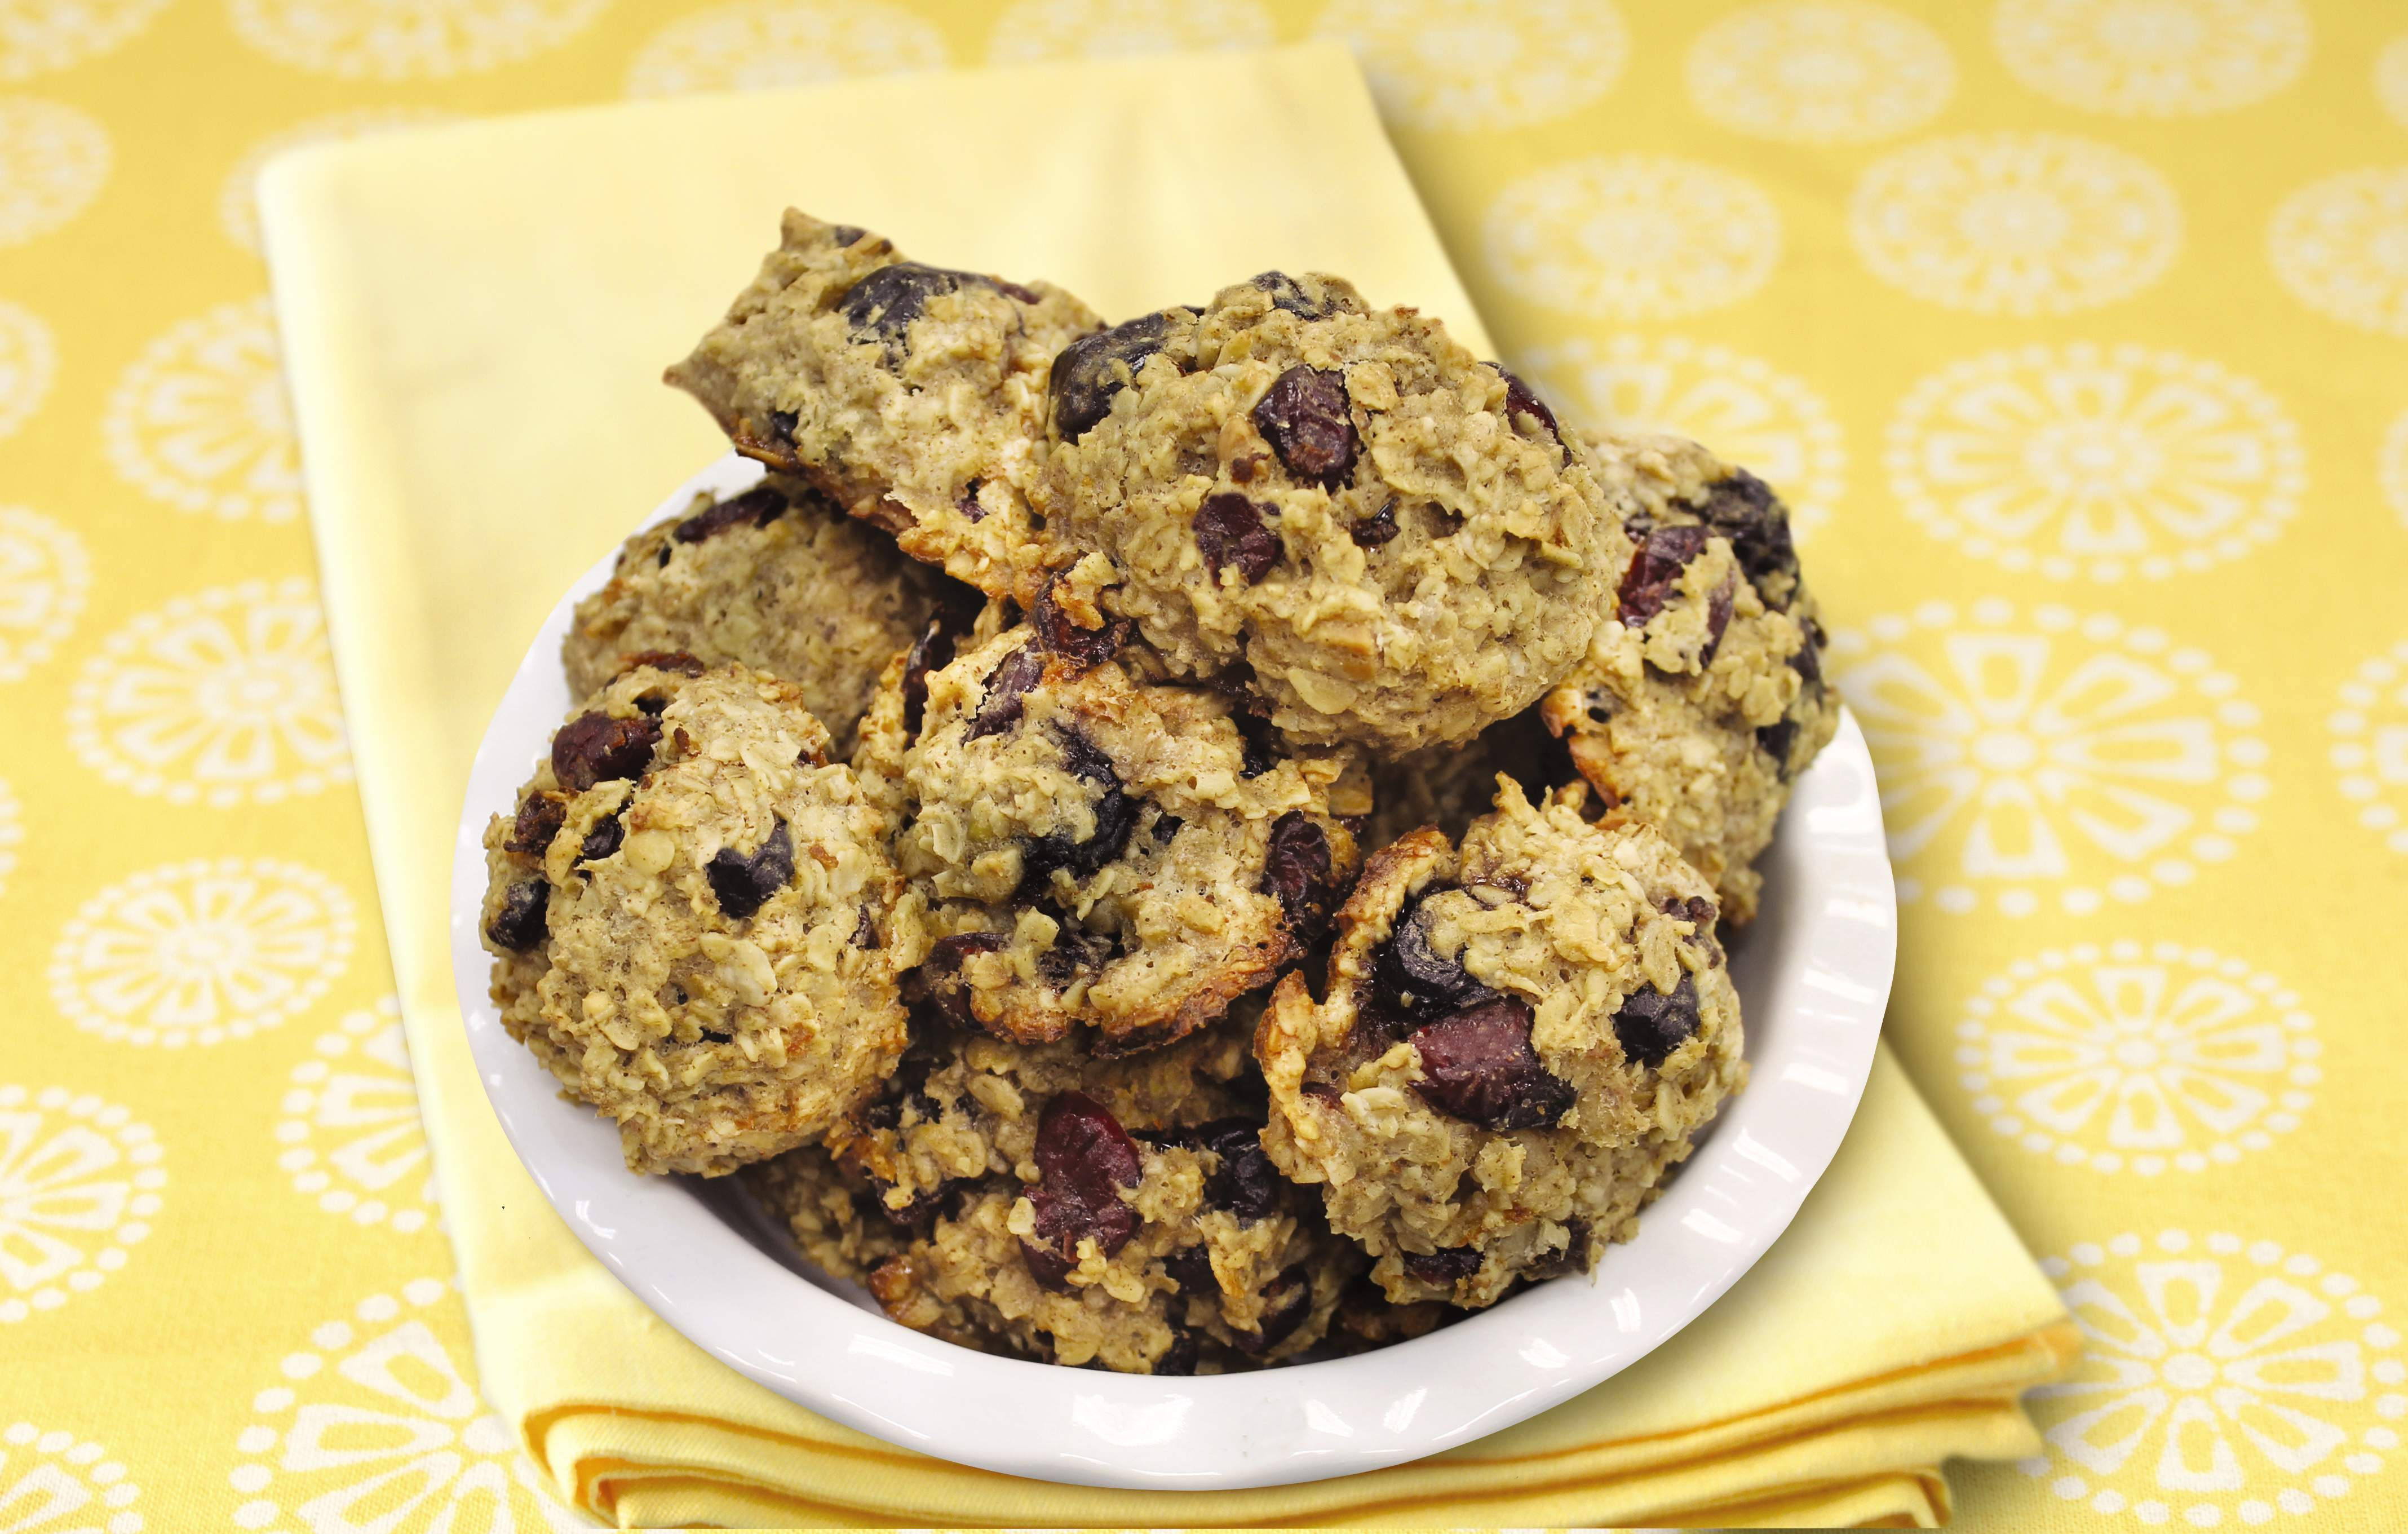 Breakfast cookies with mixed berries.